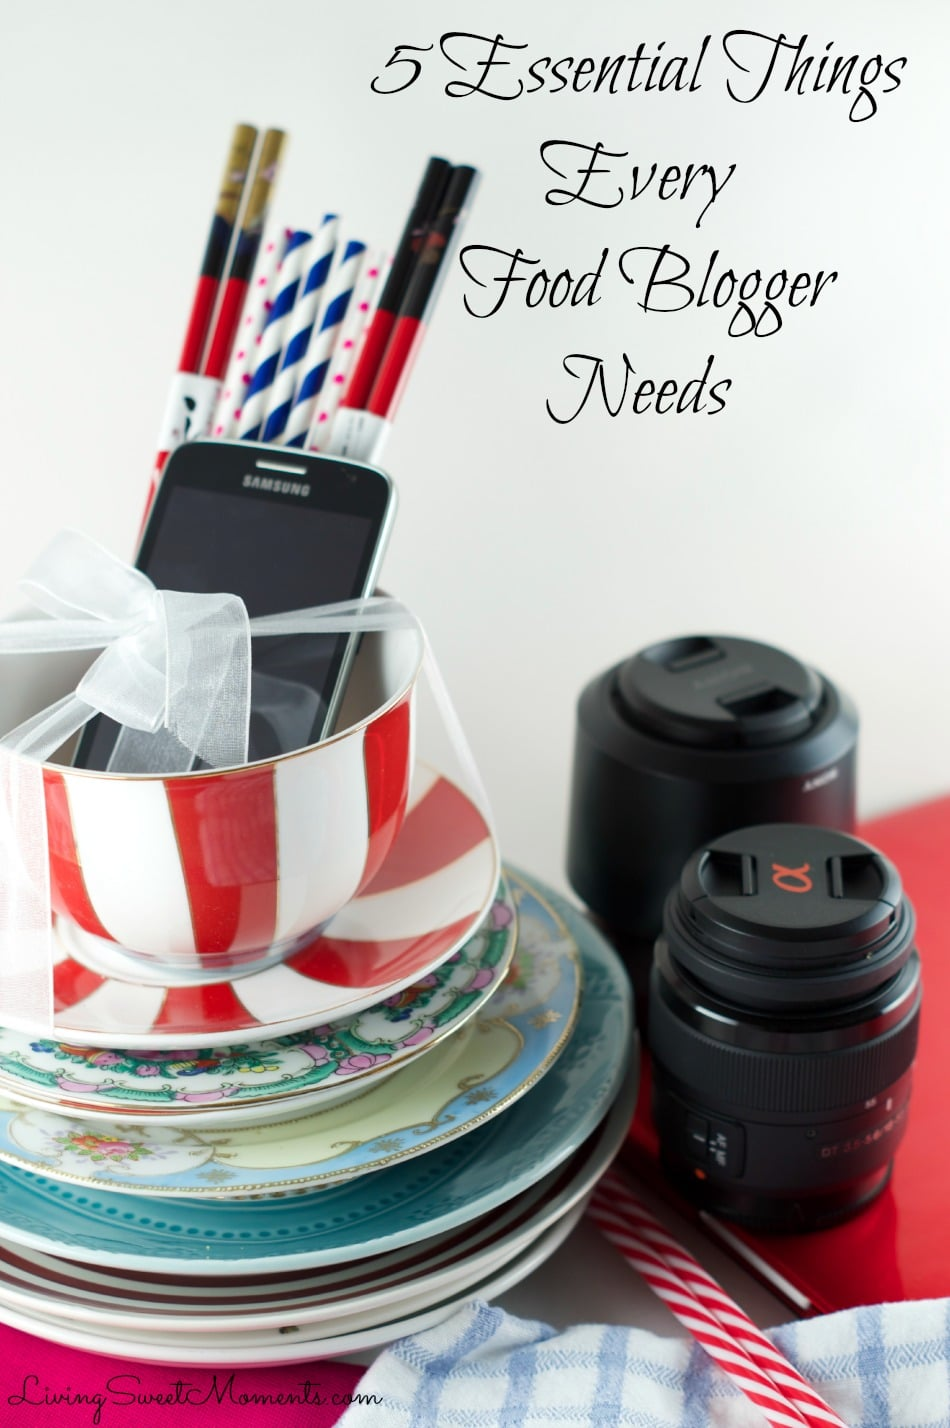 5 Essential Things Every Food Blogger Needs (Video Tutorial) - Becoming a food blogger requires much more than delicious food. Here's a video and a list of other items that are recommended in order to become a better blogger and run a successful post.